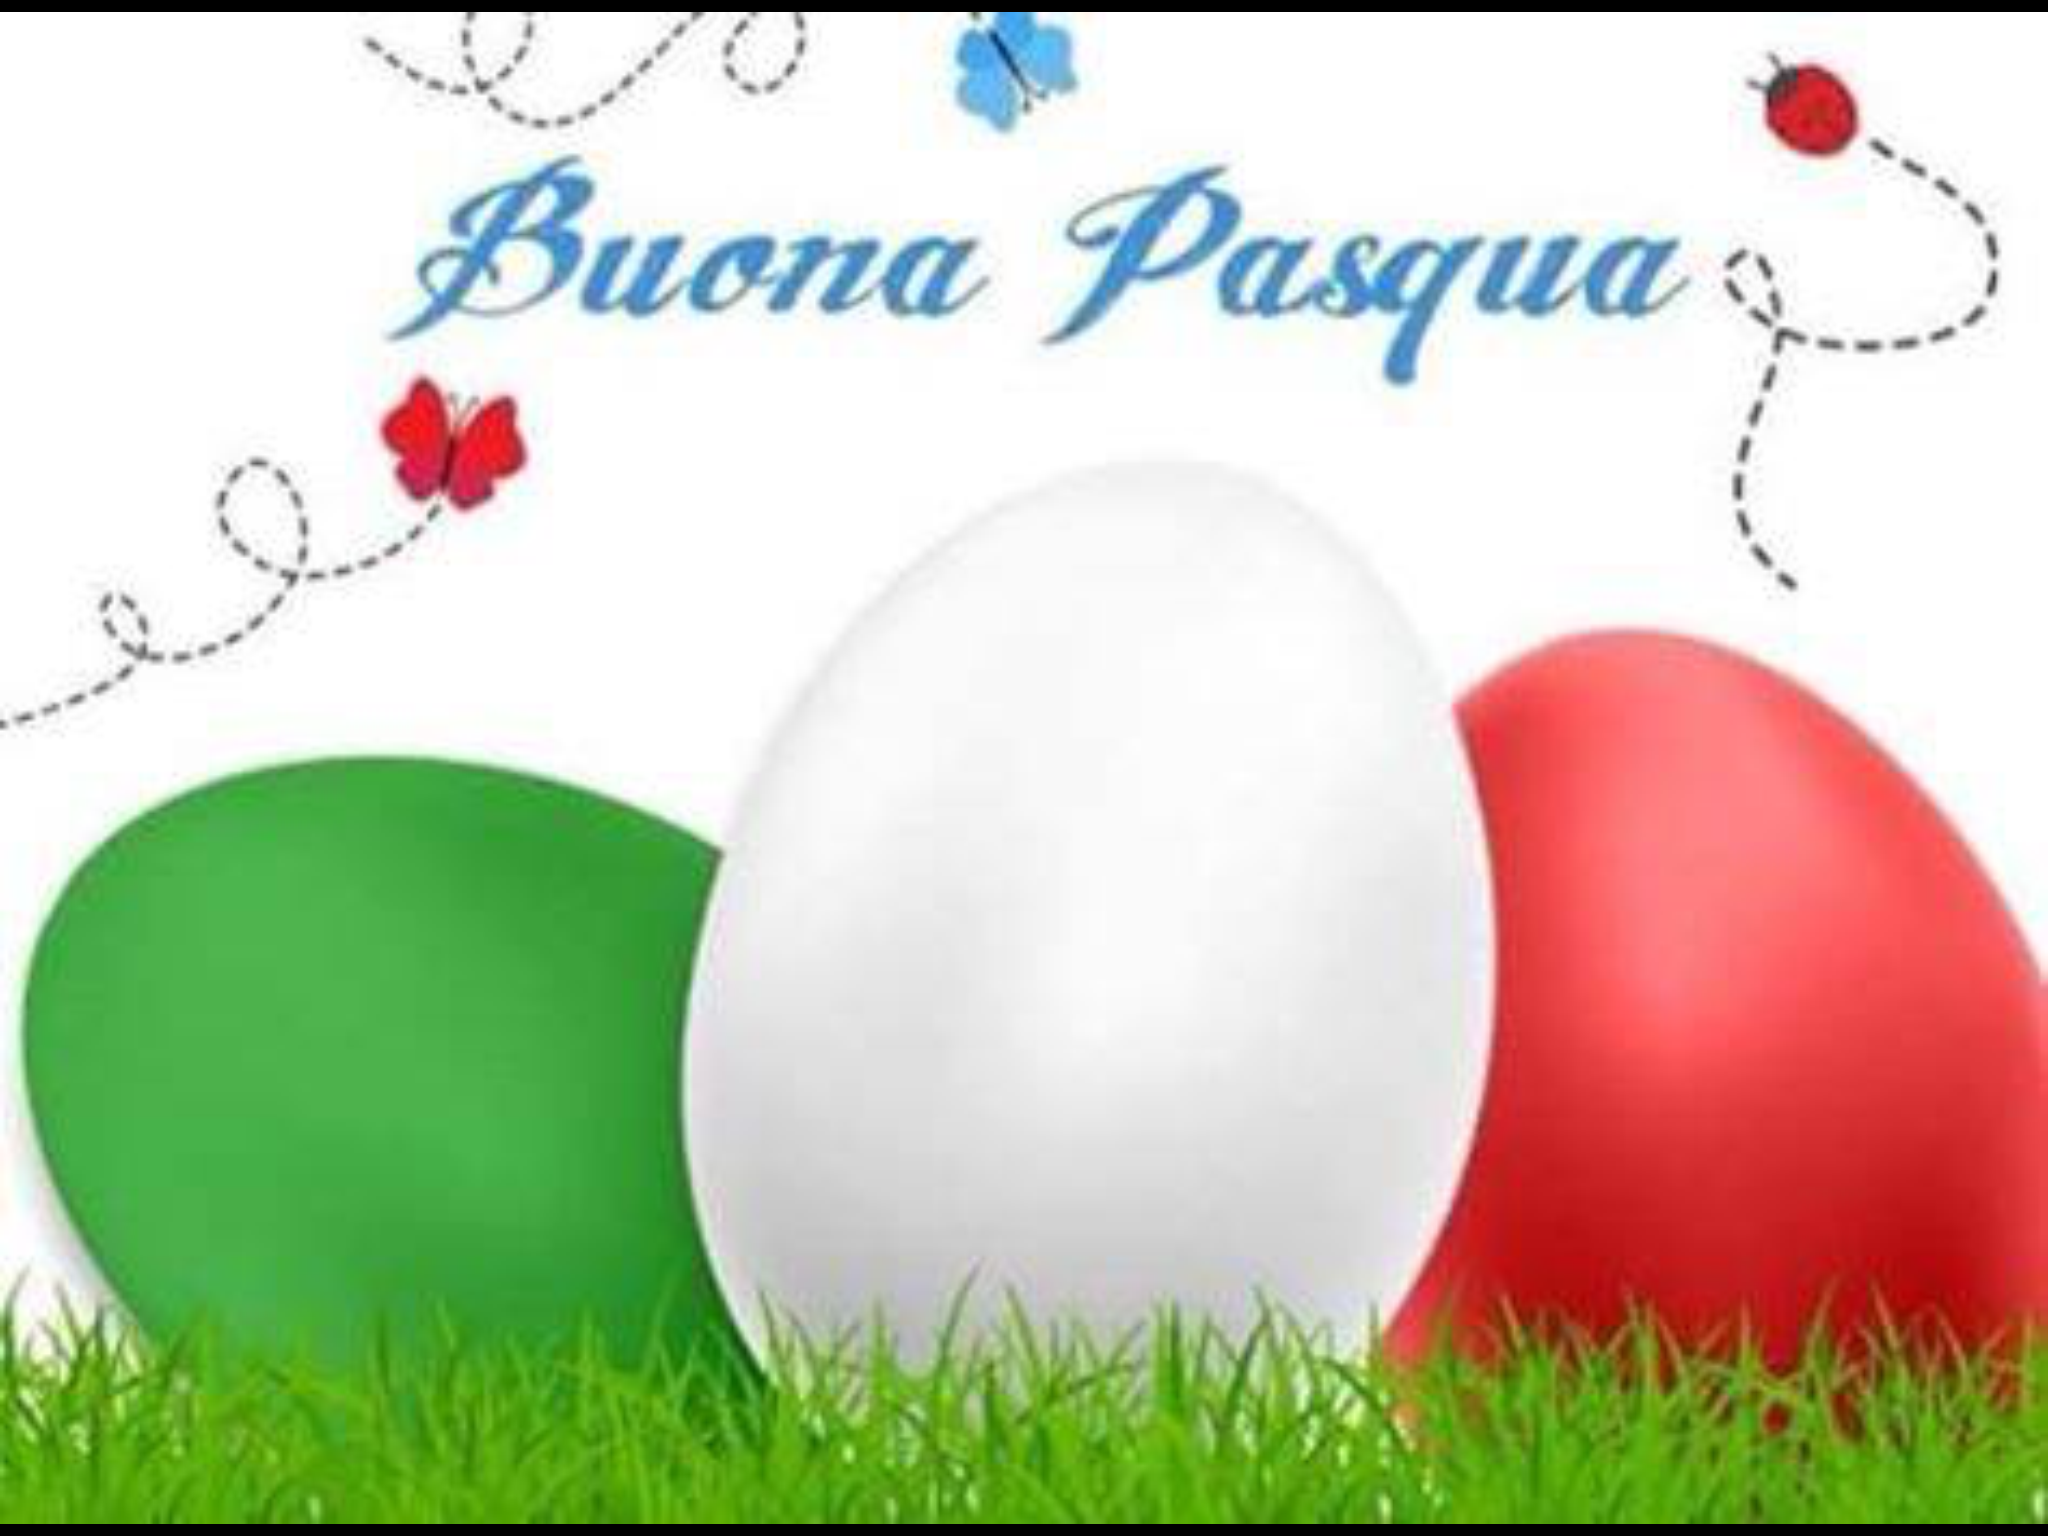 Pin by franco dp on bandiera verde bianco e rosso pinterest happy easter in italian kristyandbryce Gallery